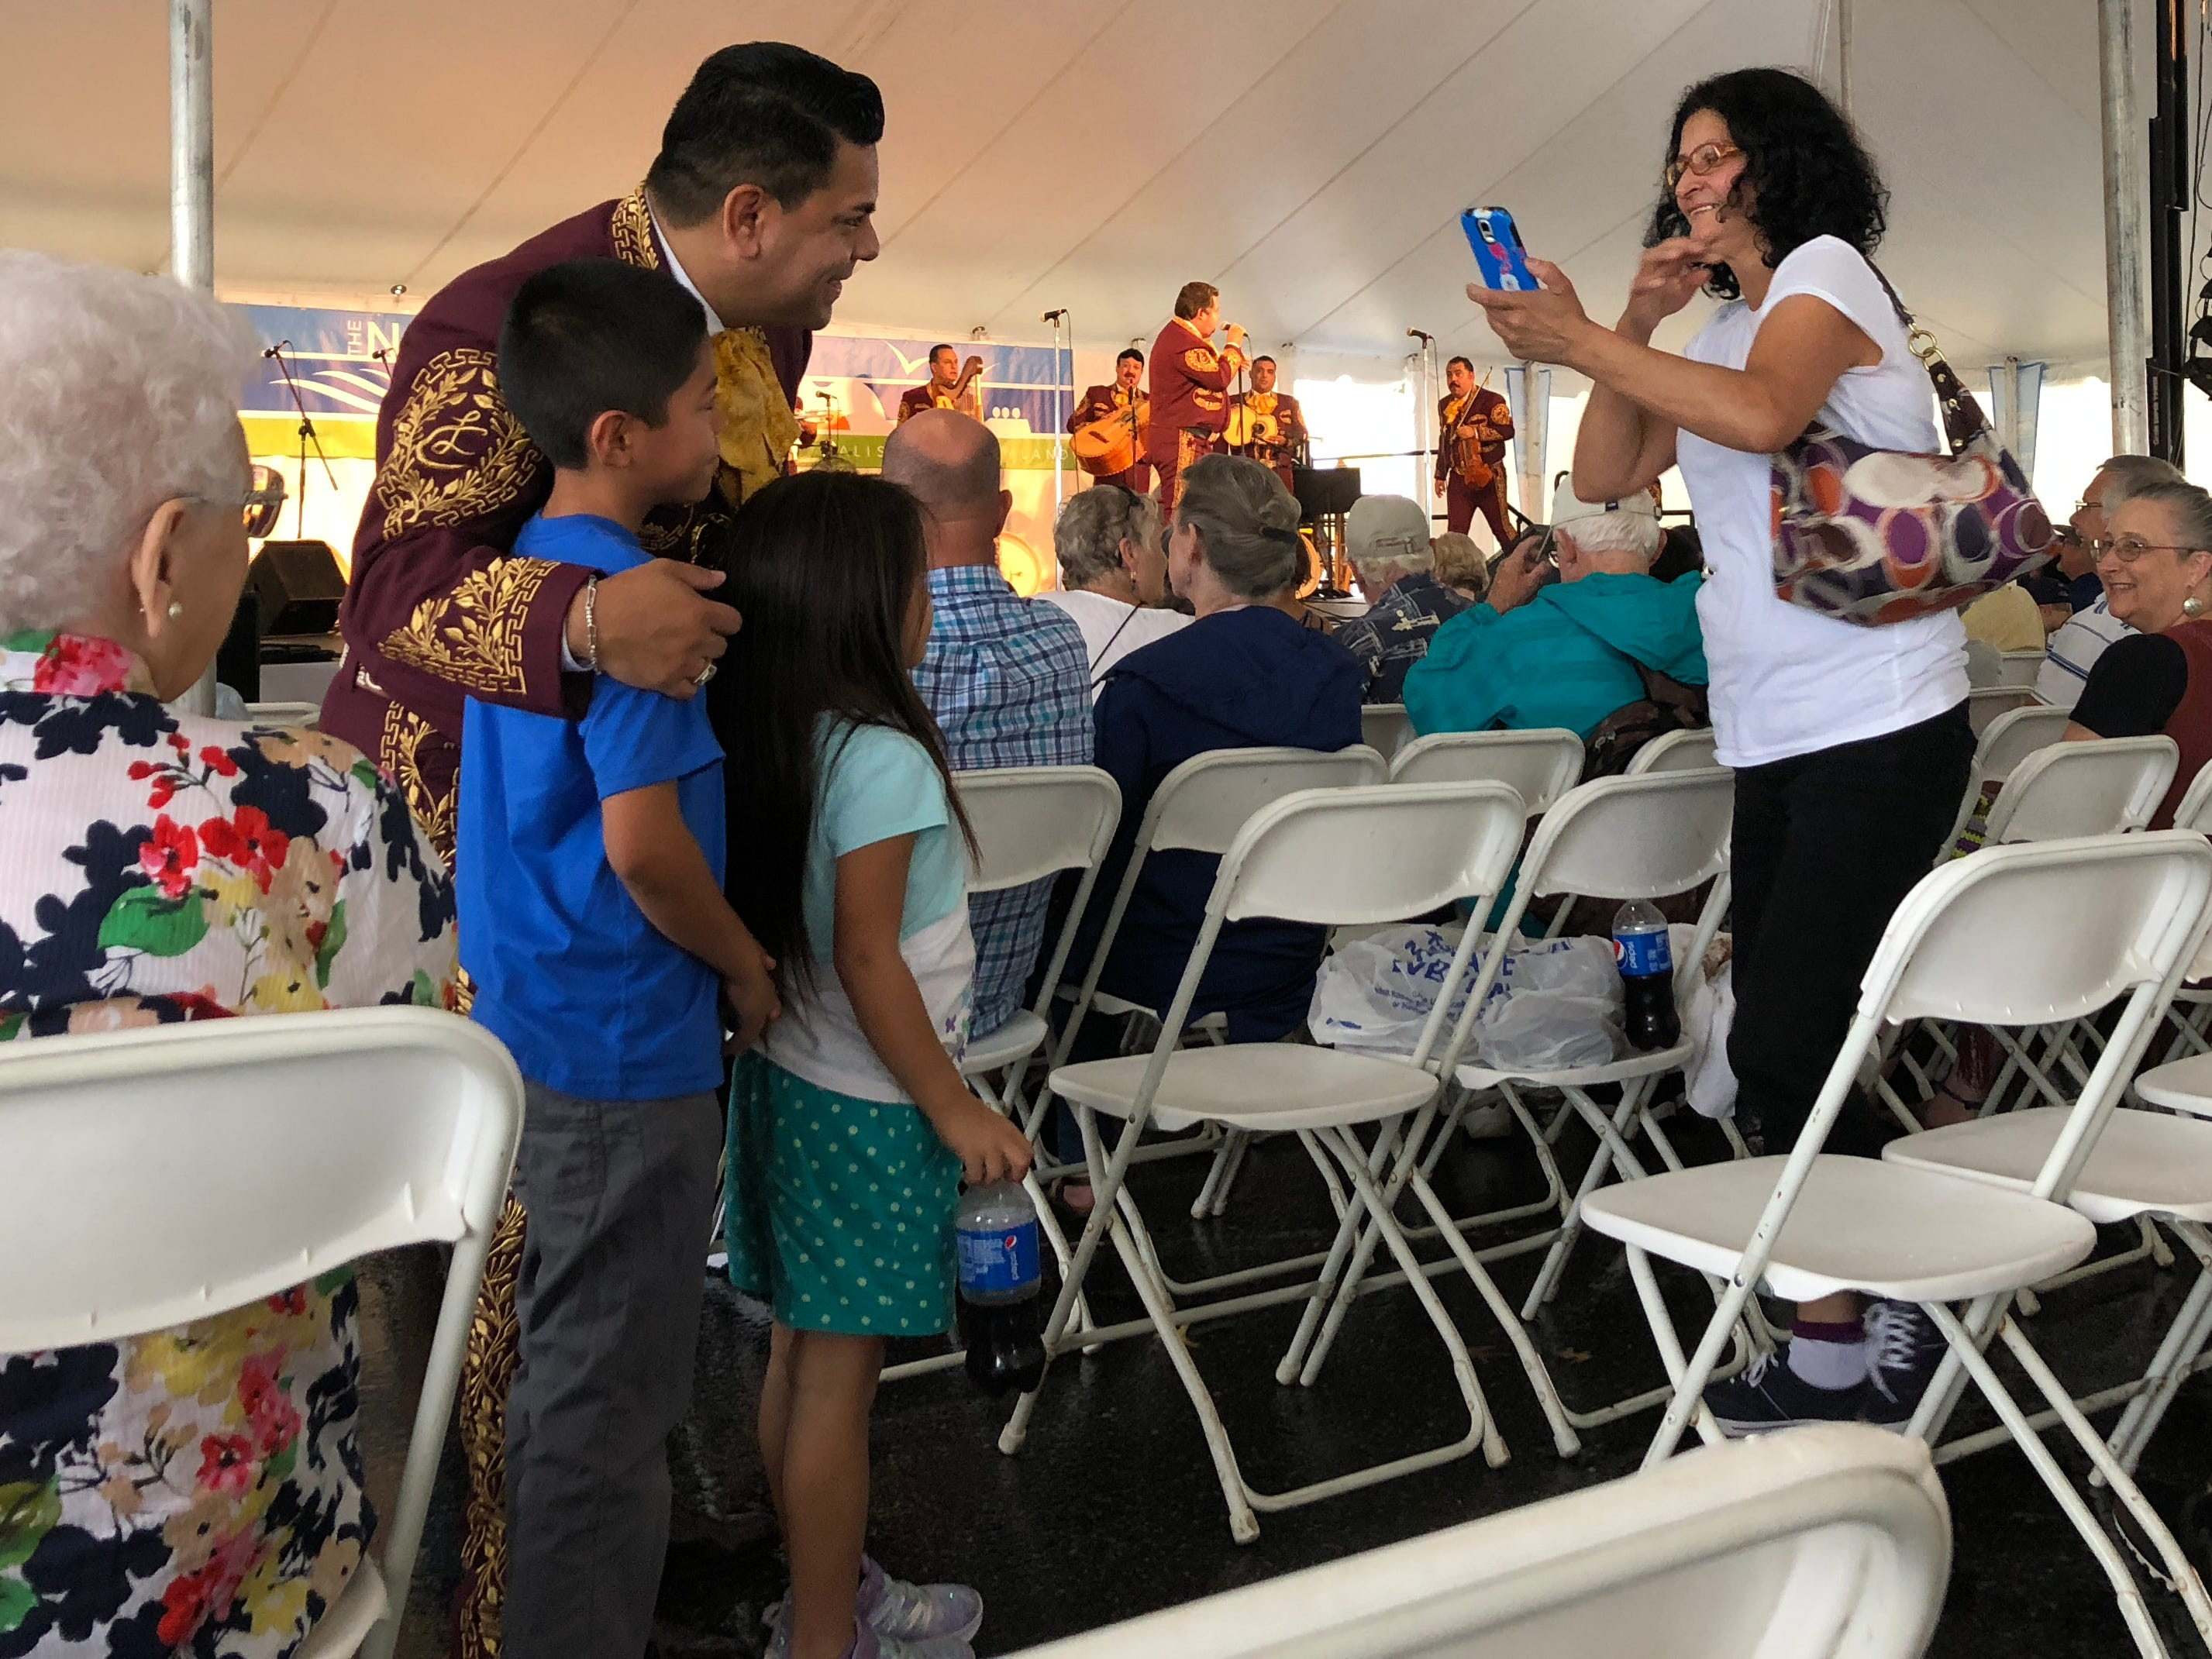 Marta Garcia of El Salvador takes a photo of her children with a Mariachi Los Camperos performer on Saturday, Sept. 8, 2018, at the National Folk Festival in Salisbury, Maryland.